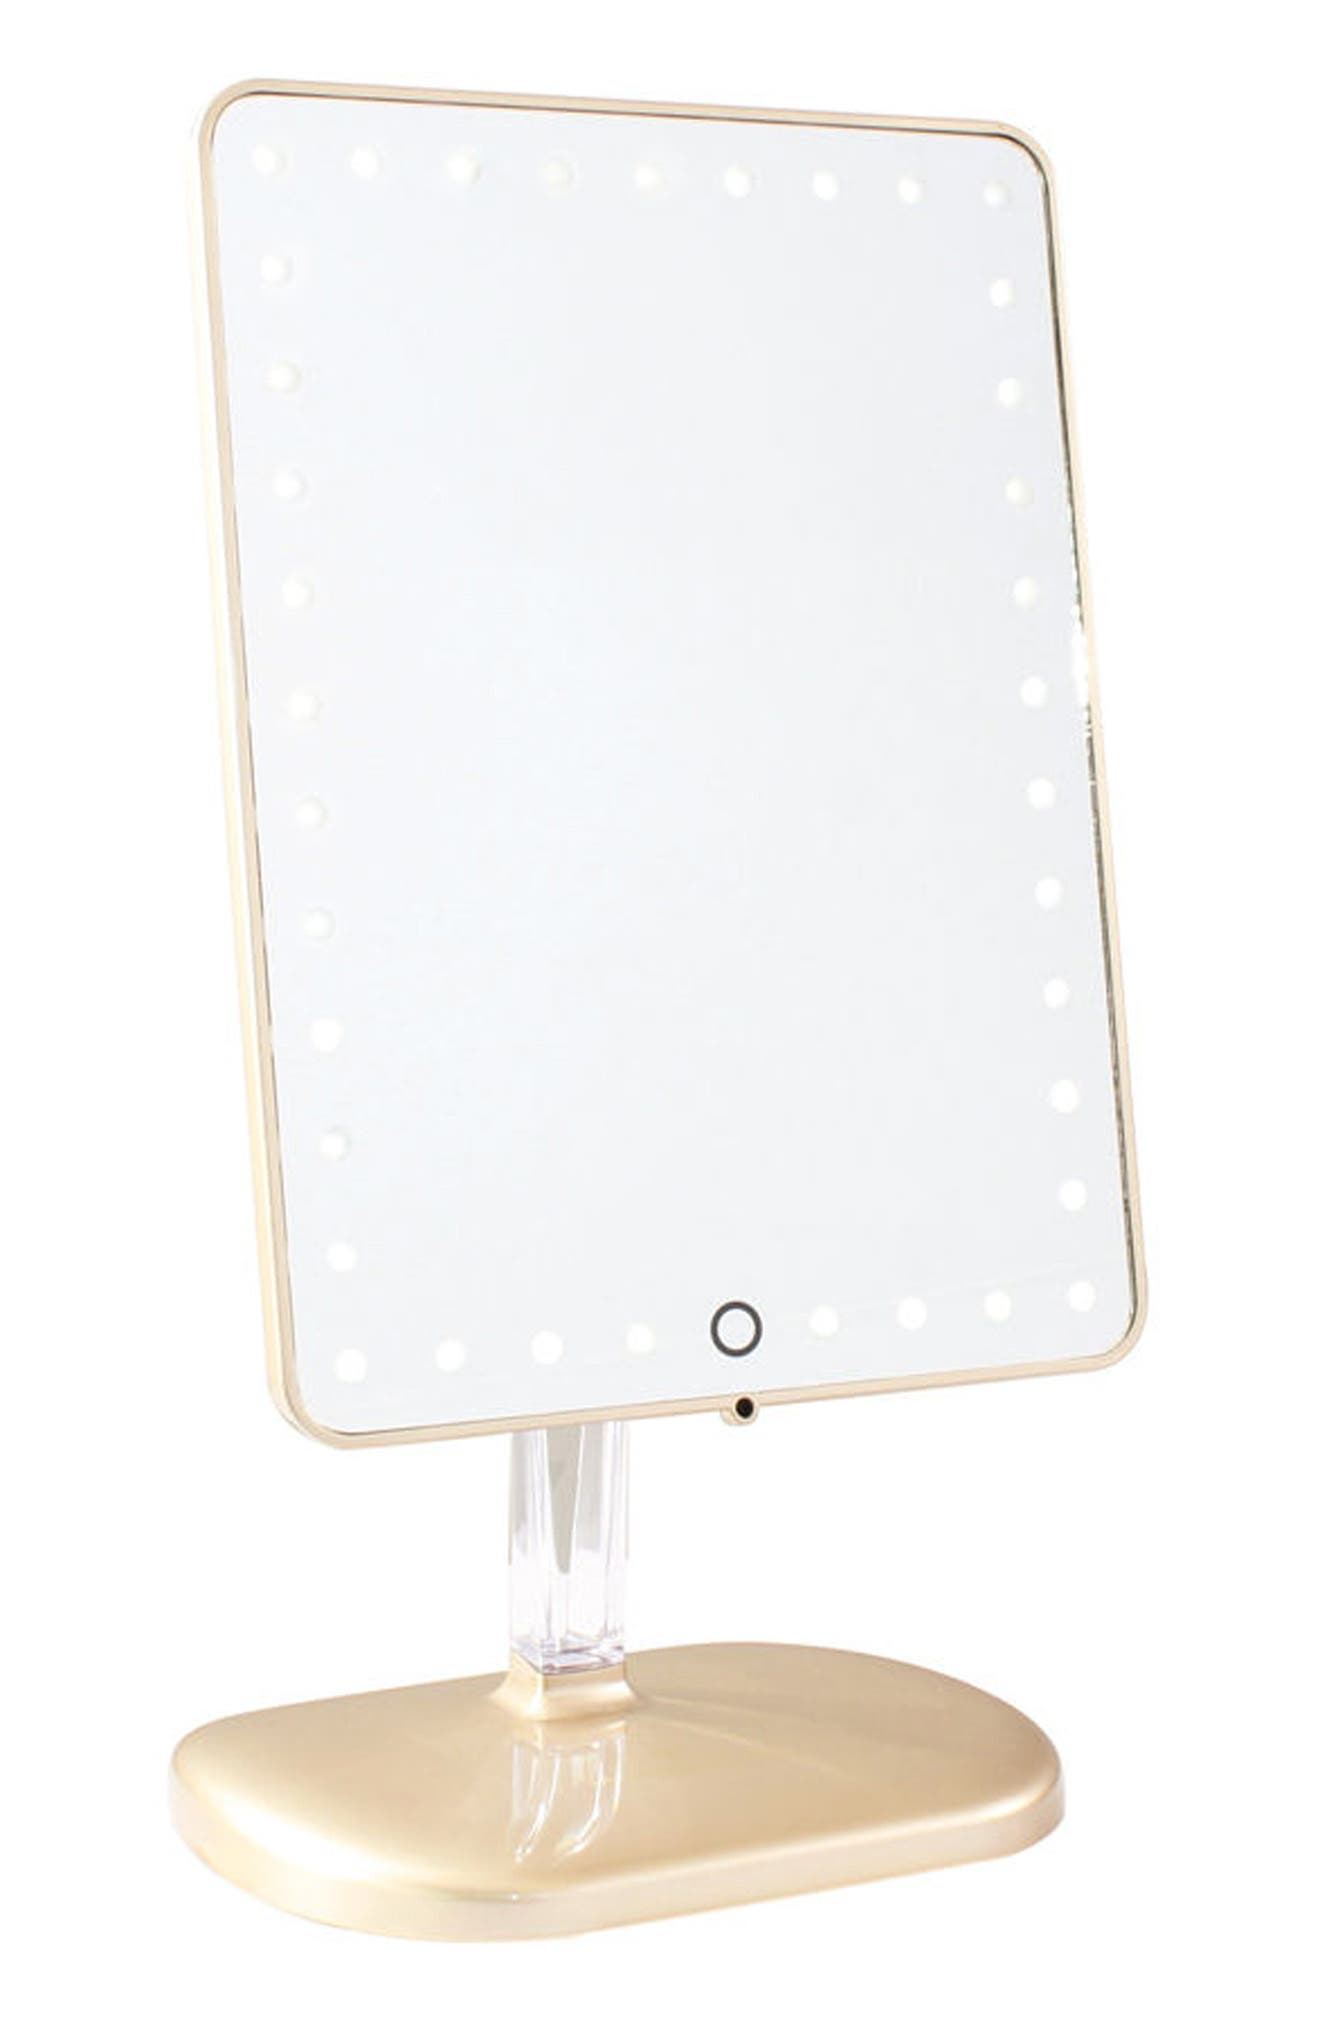 Impressions Vanity Co. Touch Pro LED Makeup Mirror with Bluetooth® Audio & Speakerphone